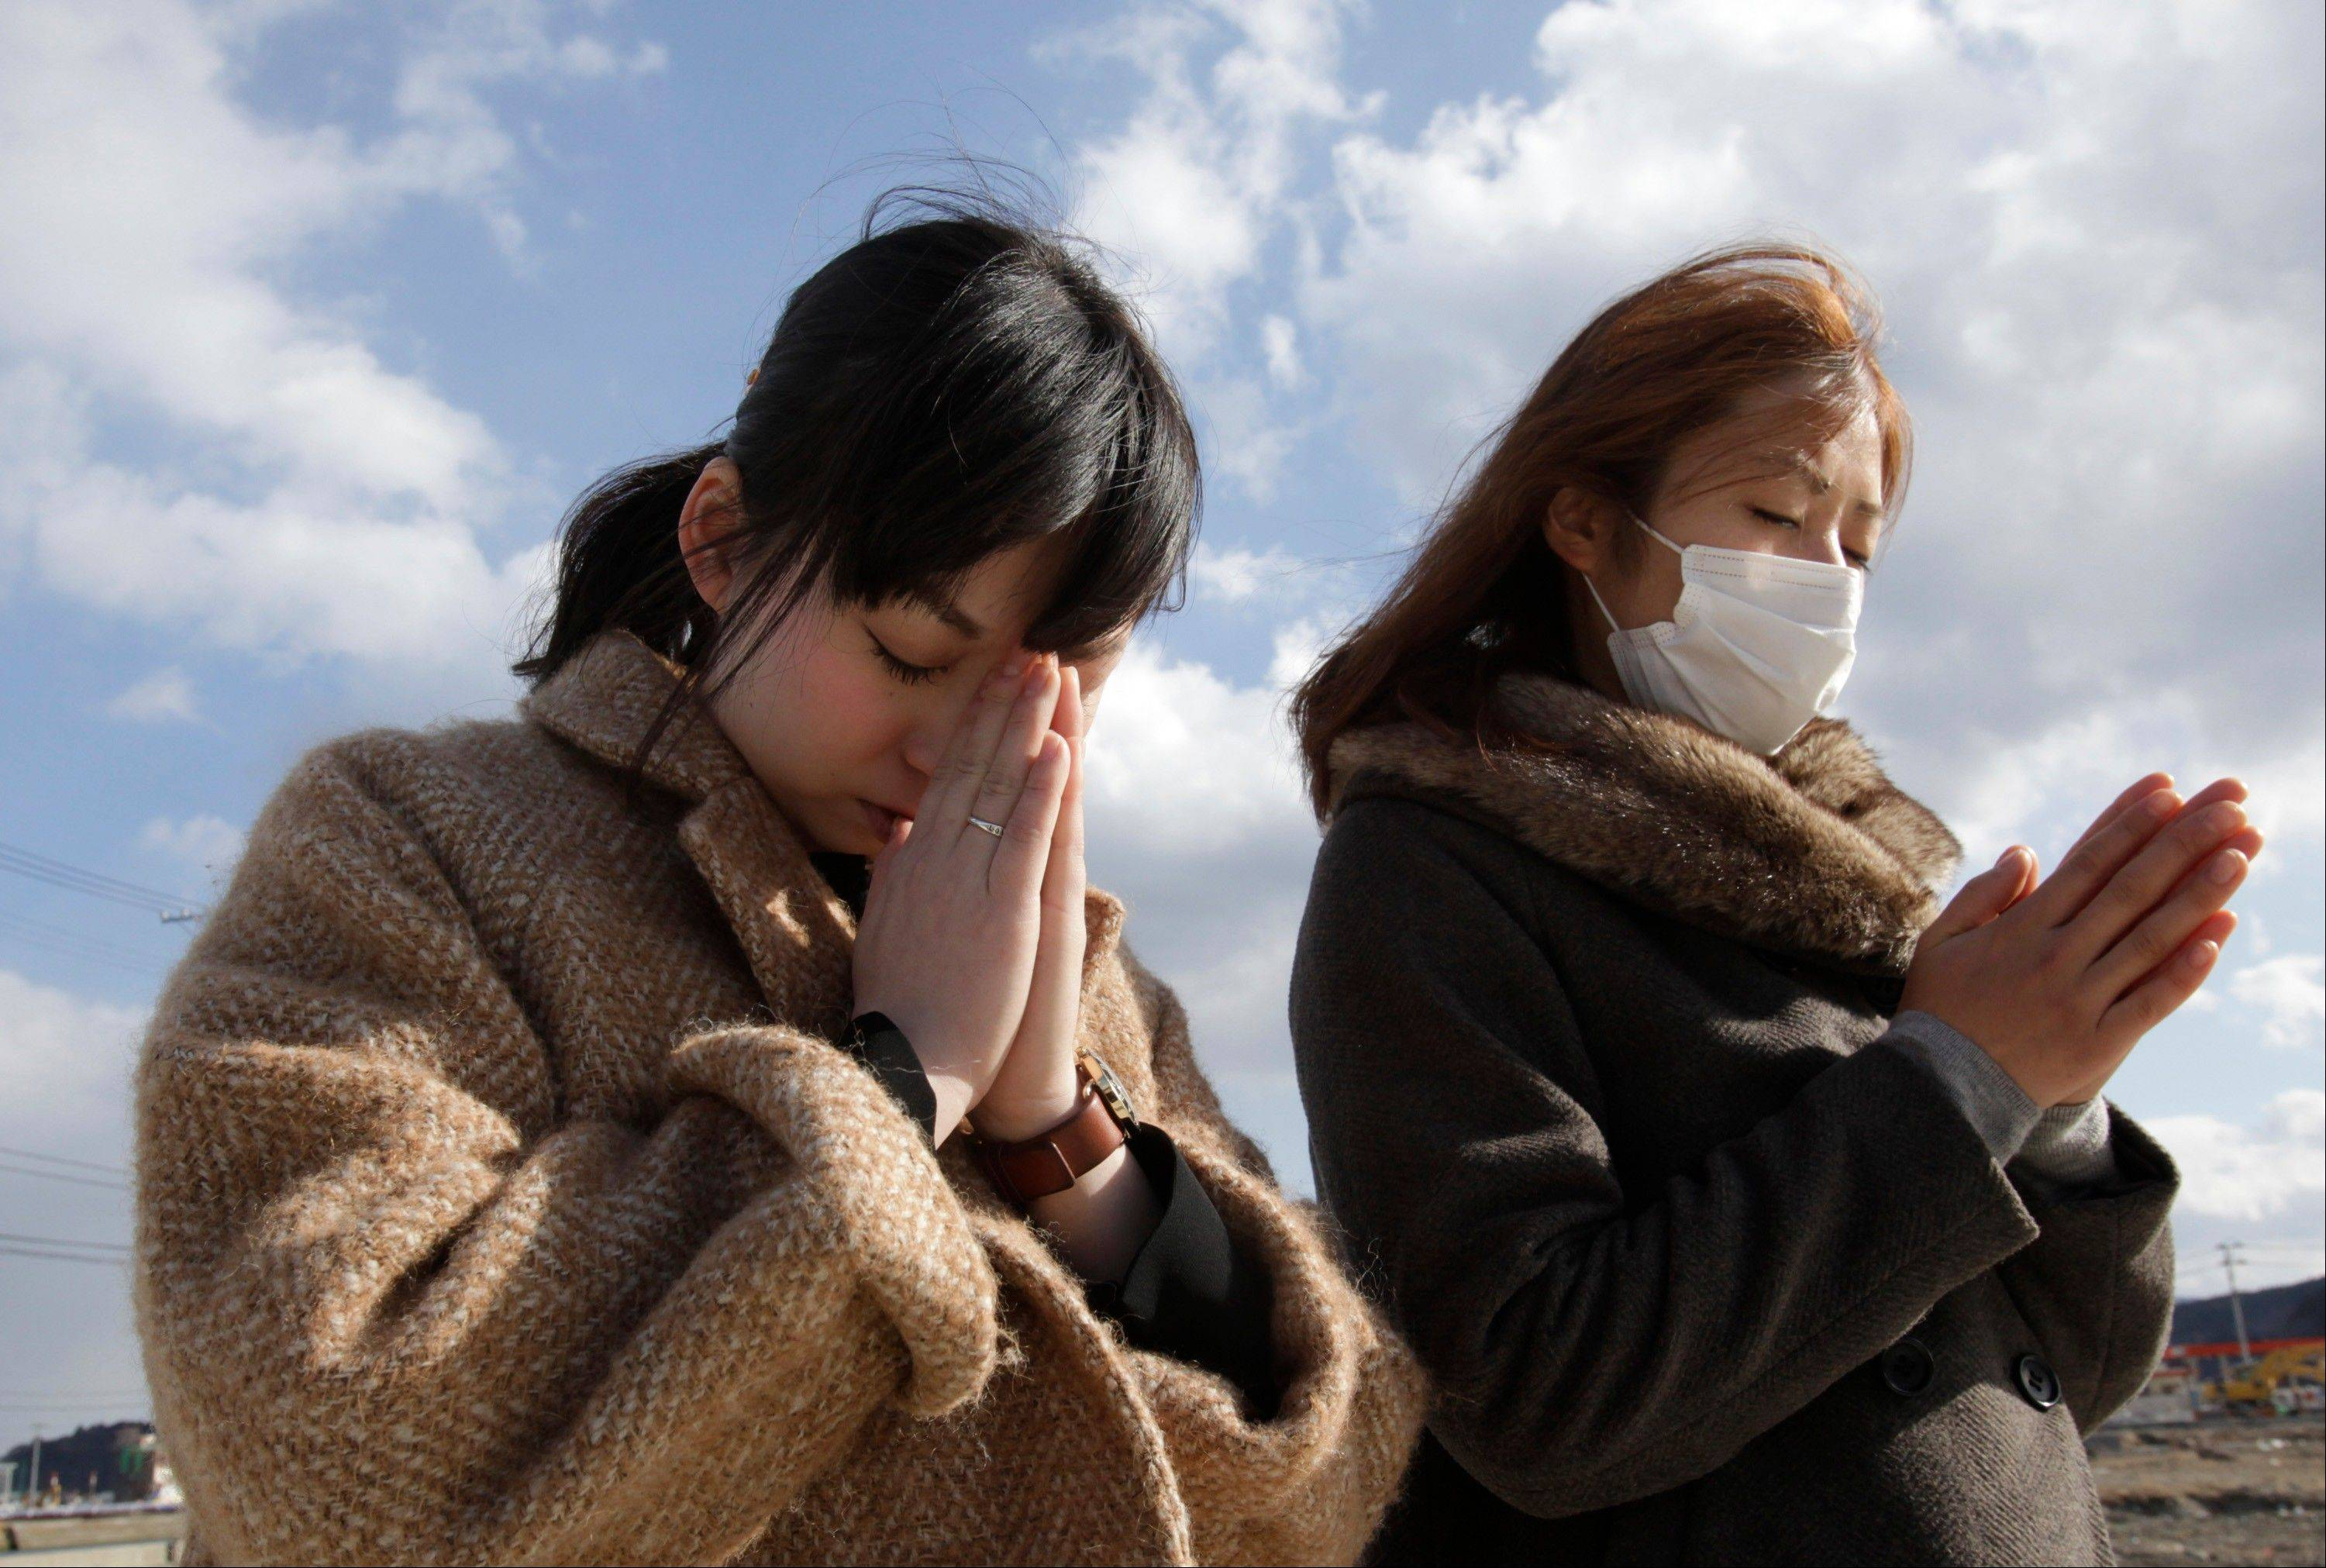 People offer prayer in a moment of silence in front of what is left of a disaster control center in an area devastated by the March 11, 2011 earthquake and tsunami in Minamisanriku, Miyagi Prefecture, Monday, March 11, 2013. Japan marked the second anniversary on Monday of the devastating disasters that left nearly 19,000 people dead or missing.